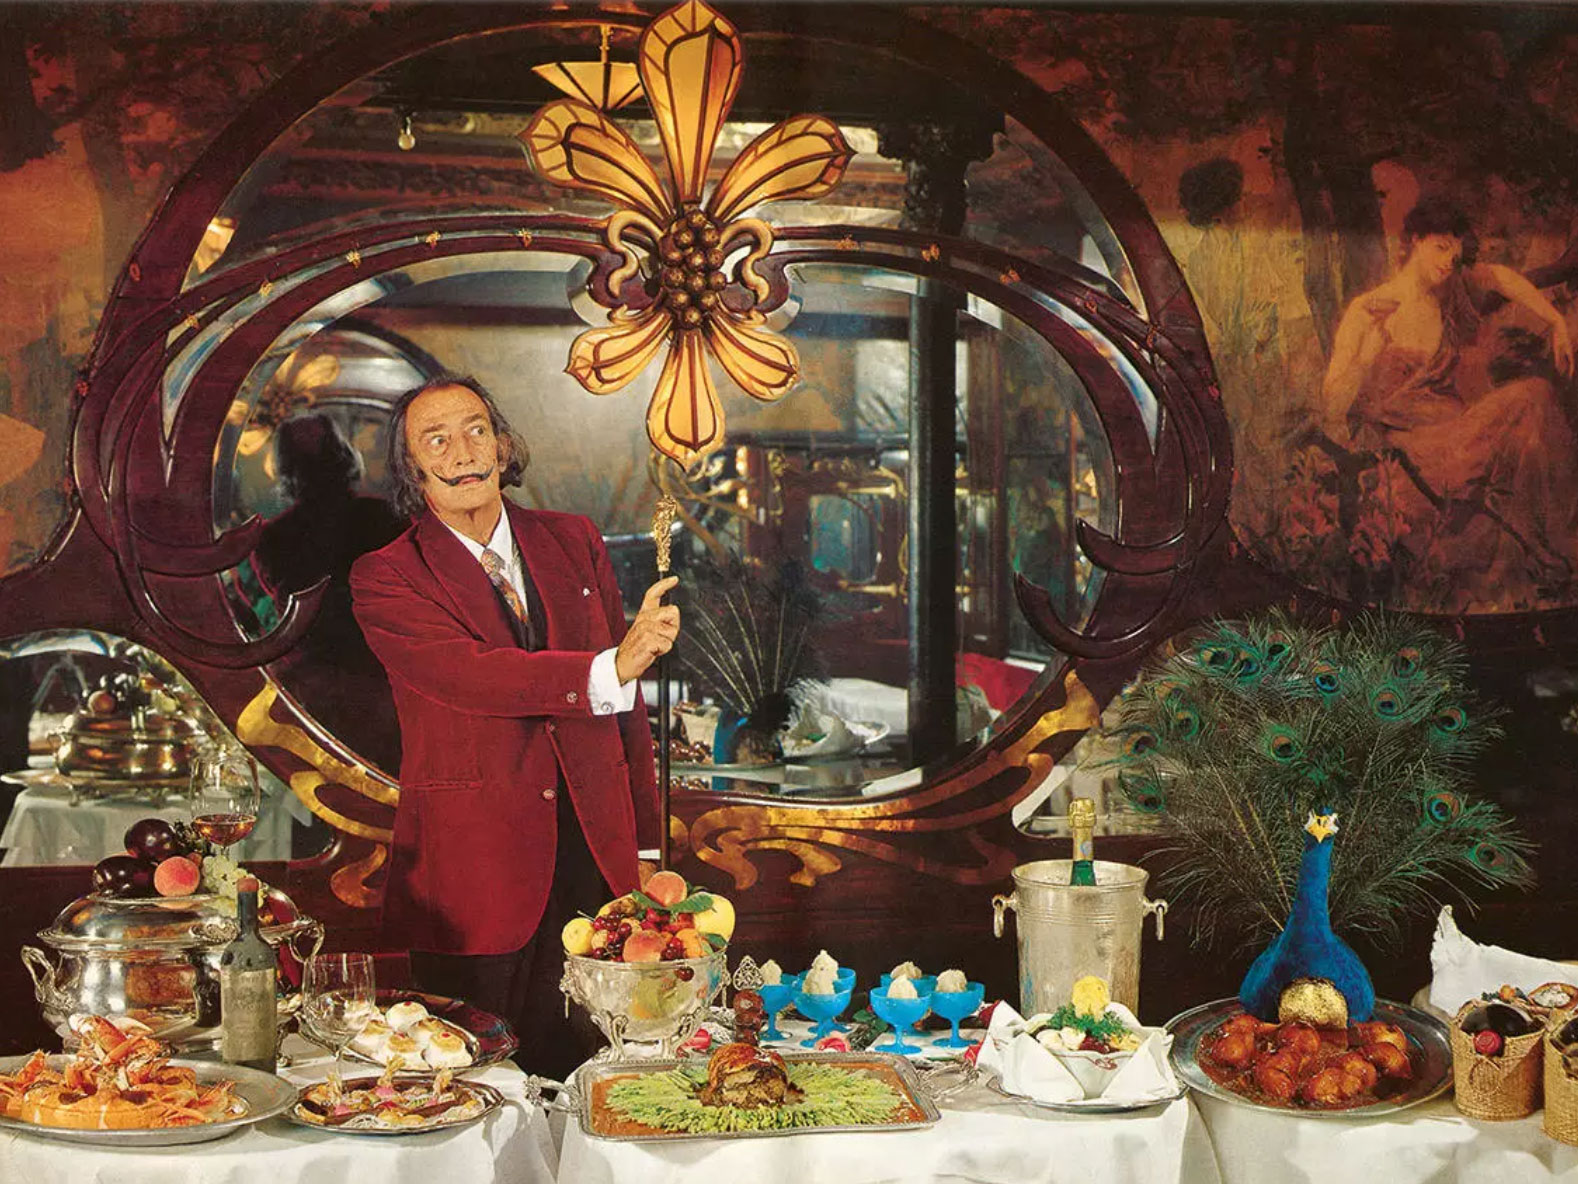 dali-cookbook.jpg